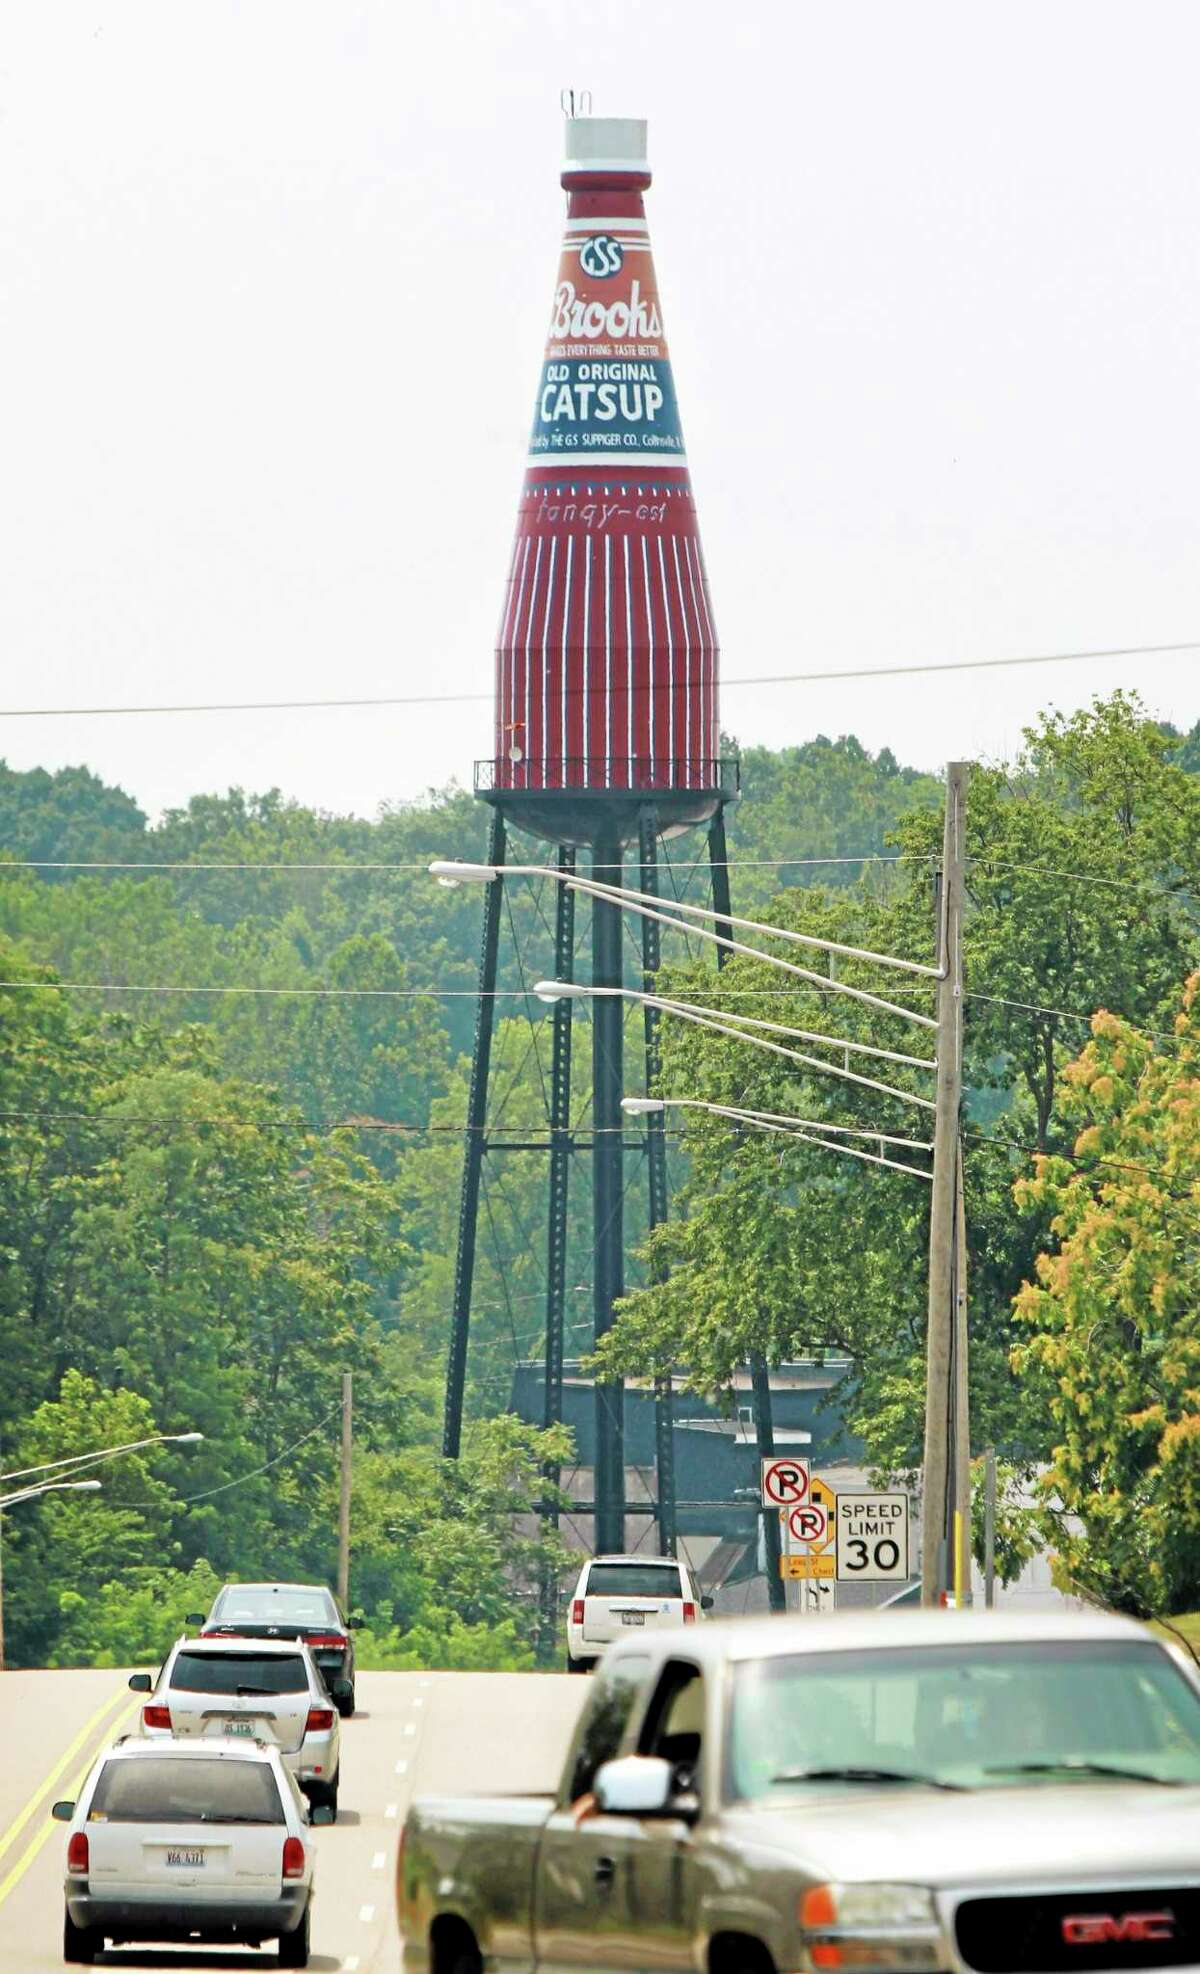 The Brooks Catsup Bottle, the largest Catsup Bottle in the world, is just south of Collinsville, Illinois. Built for the bottlers of Brooks old catsup, the bottle was added to the National Registry of Historic Places in 2002 after being restored in 1995. The catsup bottle is also a water tower. (File, AP Photo/Belleville News-Democrat, Derik Holtmann)